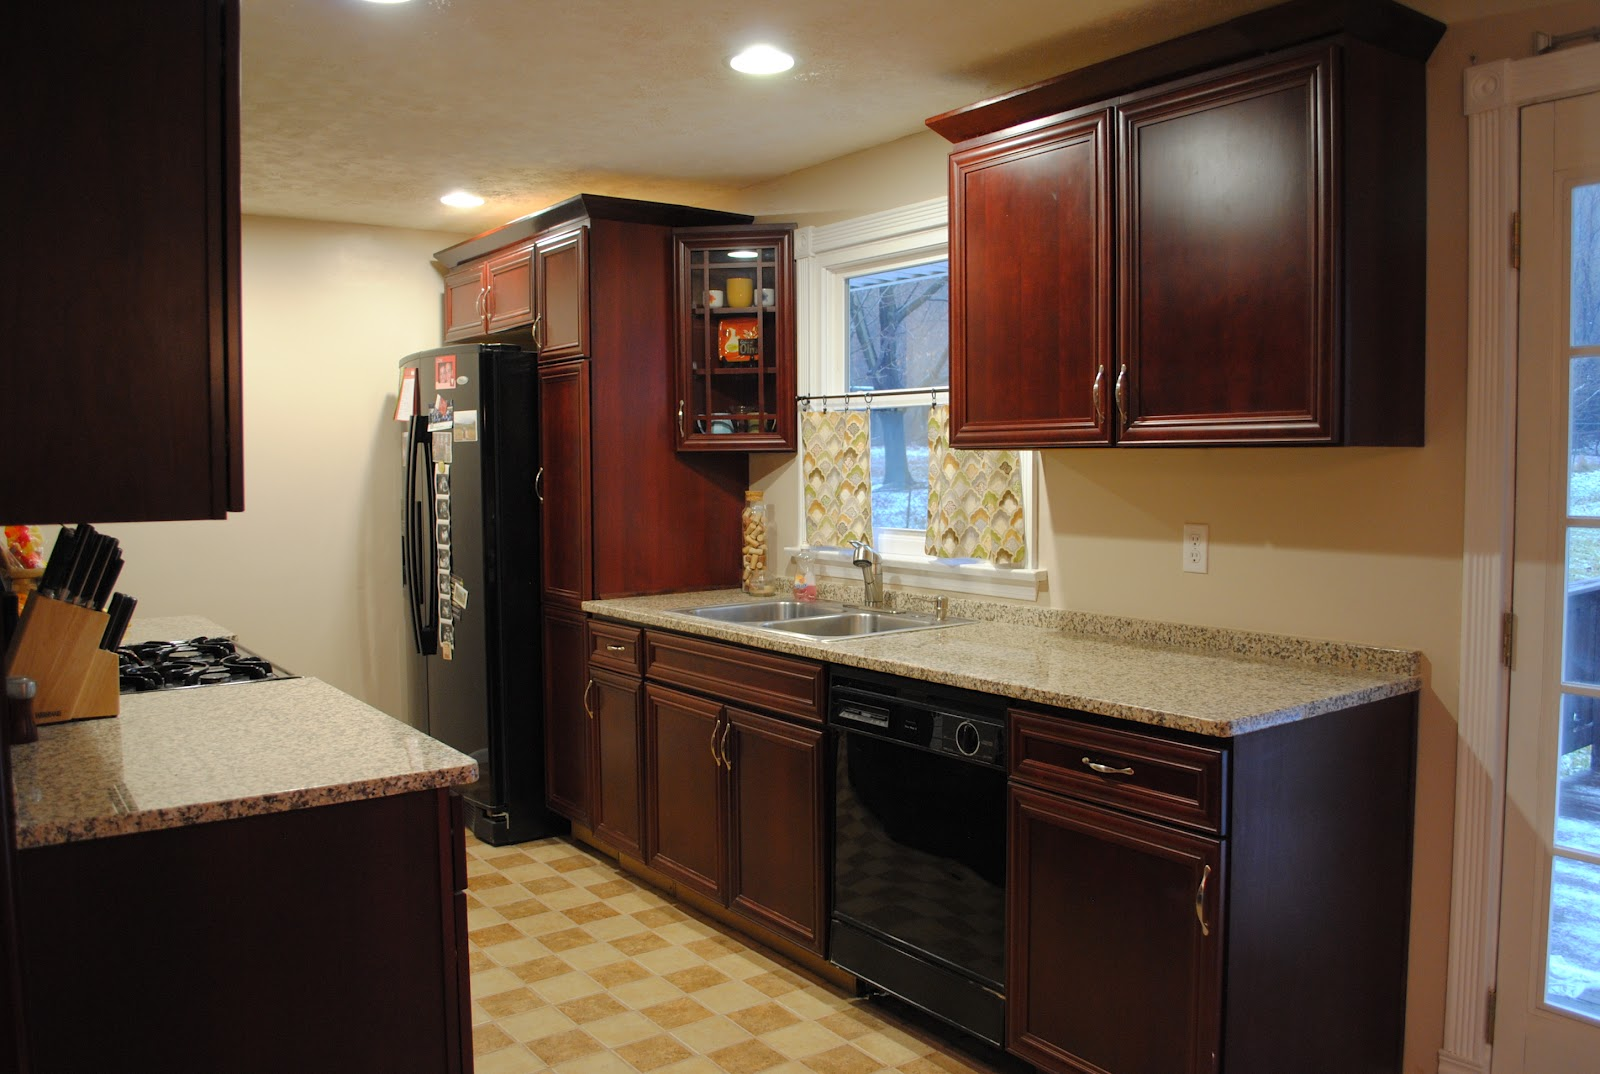 Kitchen Cabinets With Crown Molding On Top